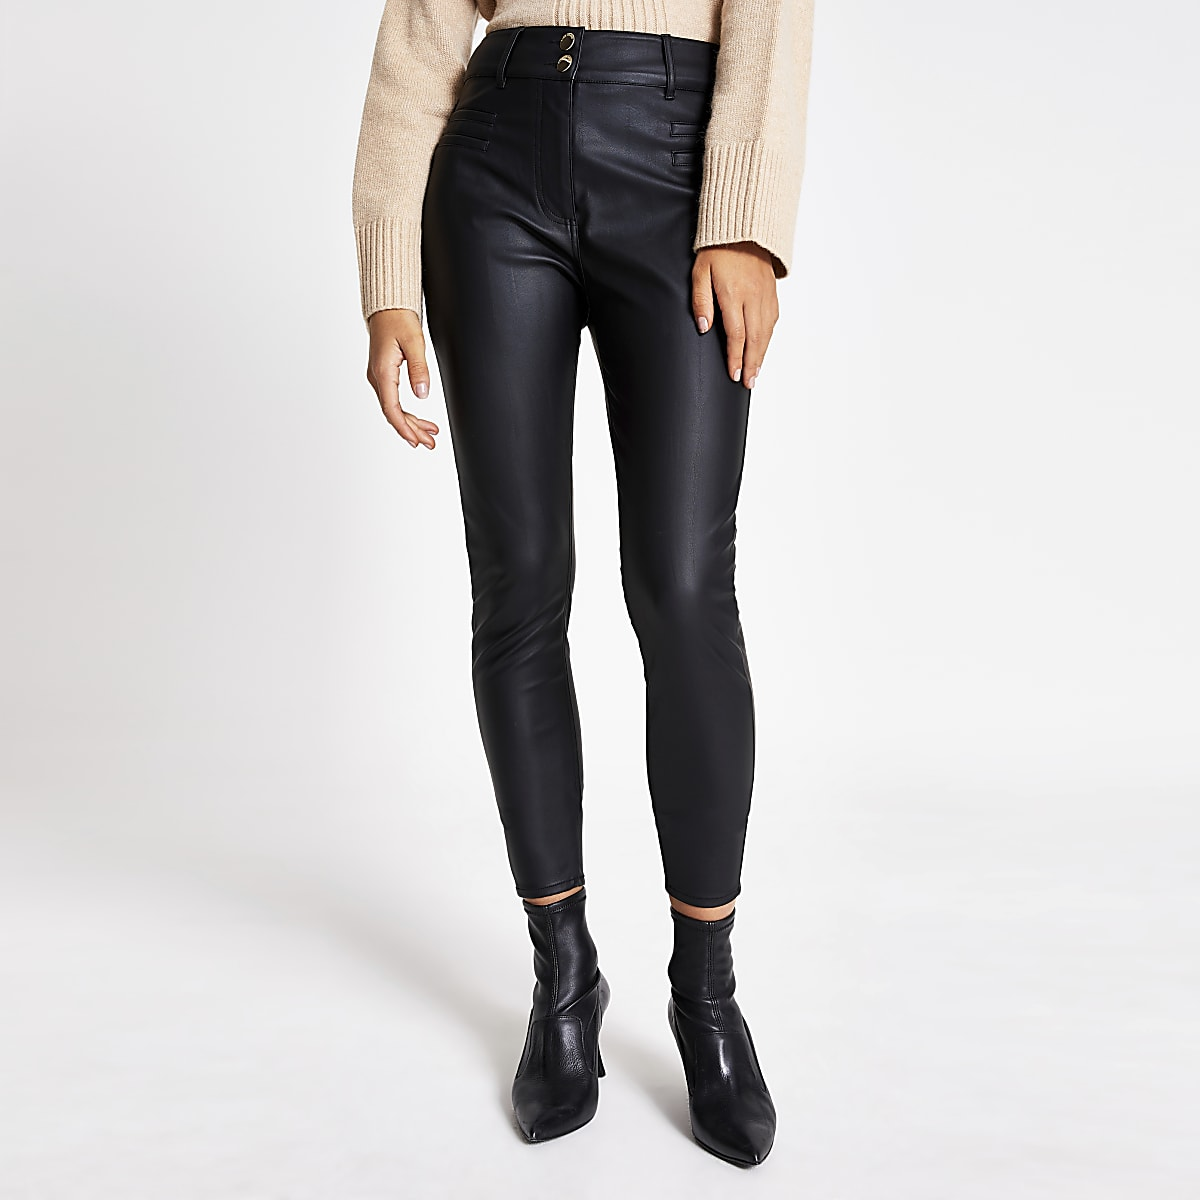 Black faux leather high waisted trousers